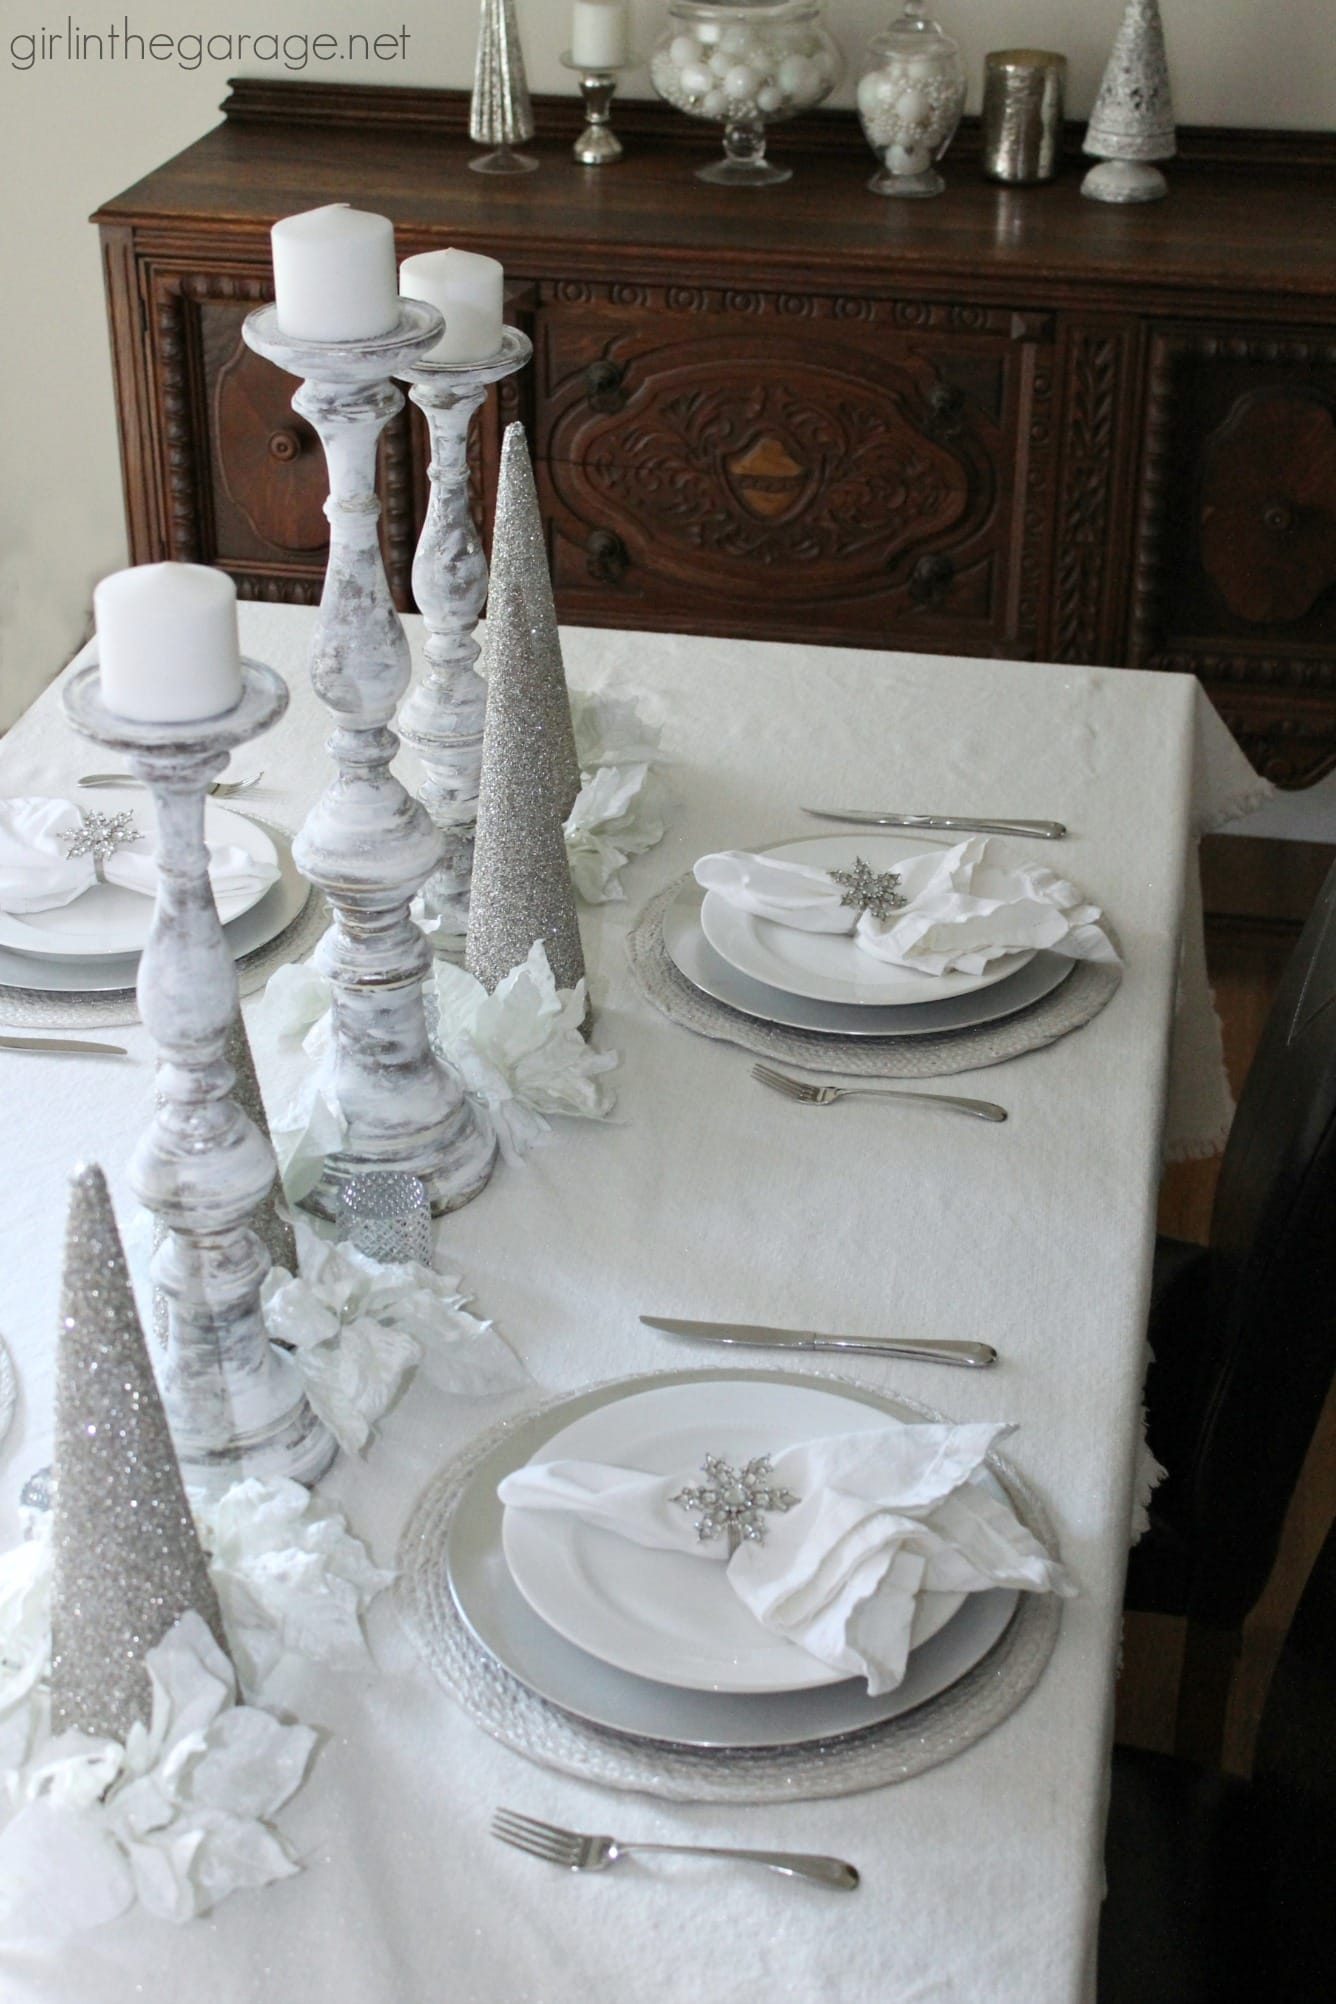 15 Gorgeous Christmas Tablescapes - www.refashionablylate.com